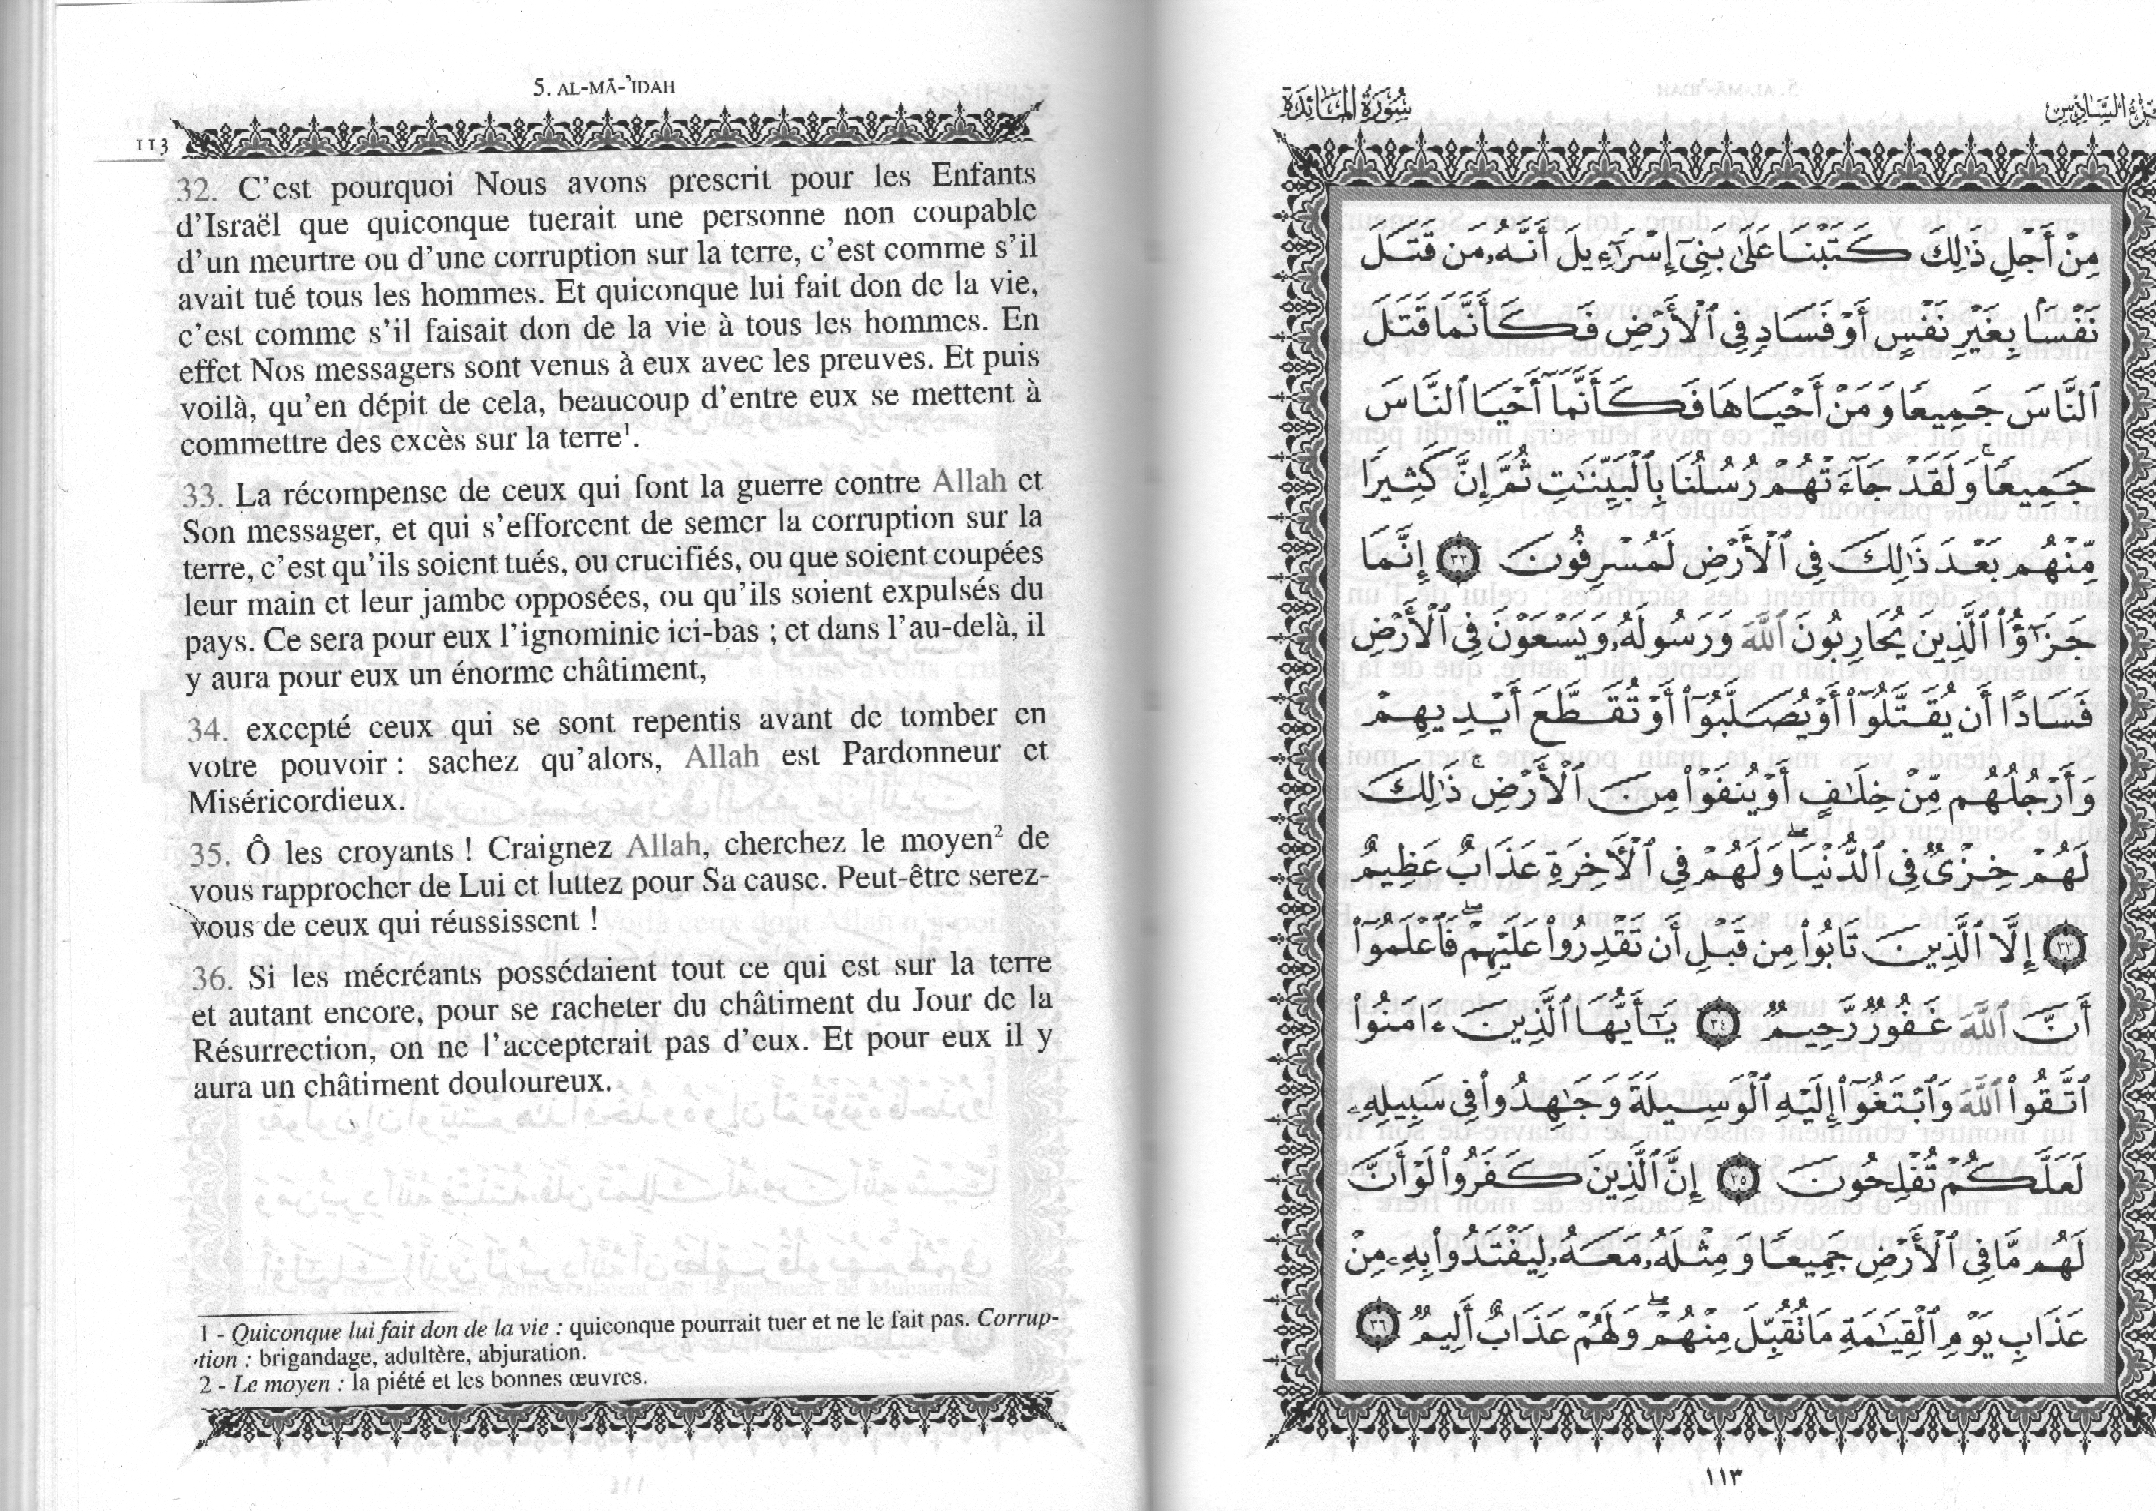 Sourate 5 Versets 32-36